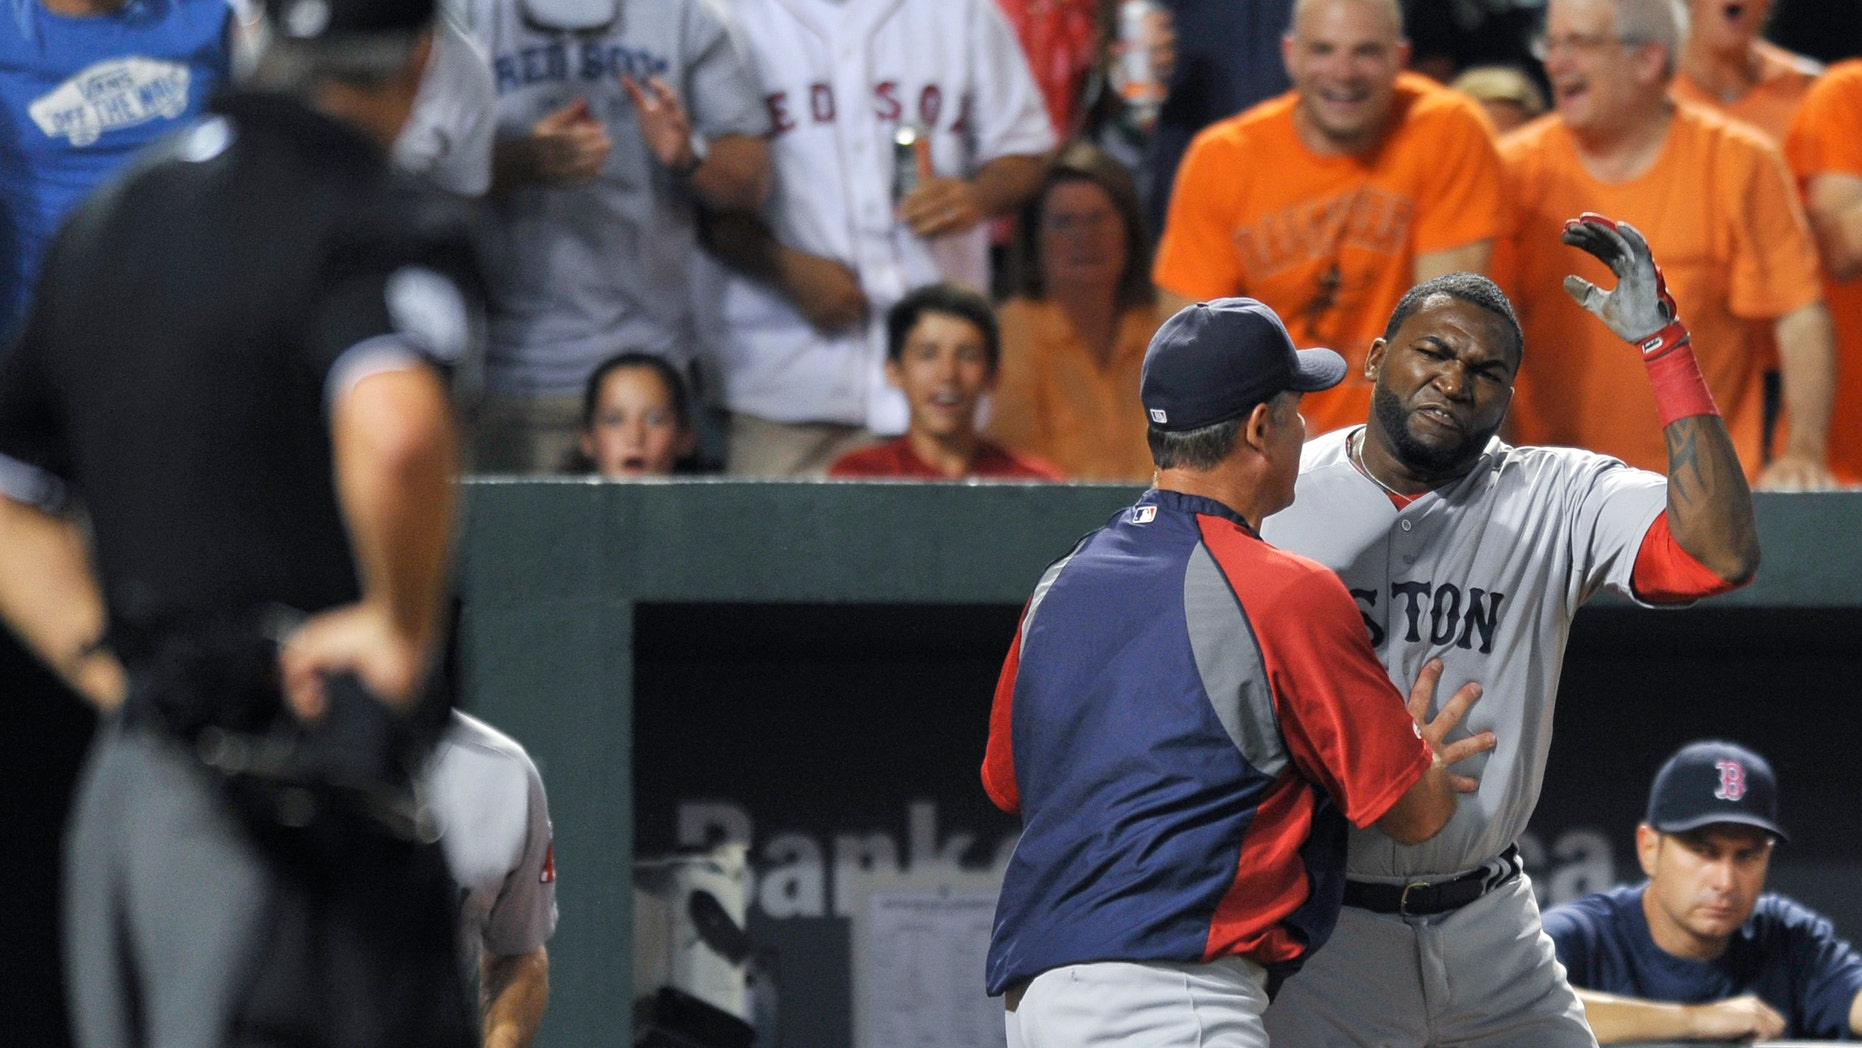 Boston Red Sox designated hitter David Ortiz reacts and is held back by manager John Farrell after being ejected by home plate umpire Tim Timmons for arguing a called third strike in the seventh inning of a baseball game against the Baltimore Orioles, Saturday, July 27, 2013, in Baltimore. Boston won 7-3. (AP Photo/Gail Burton)